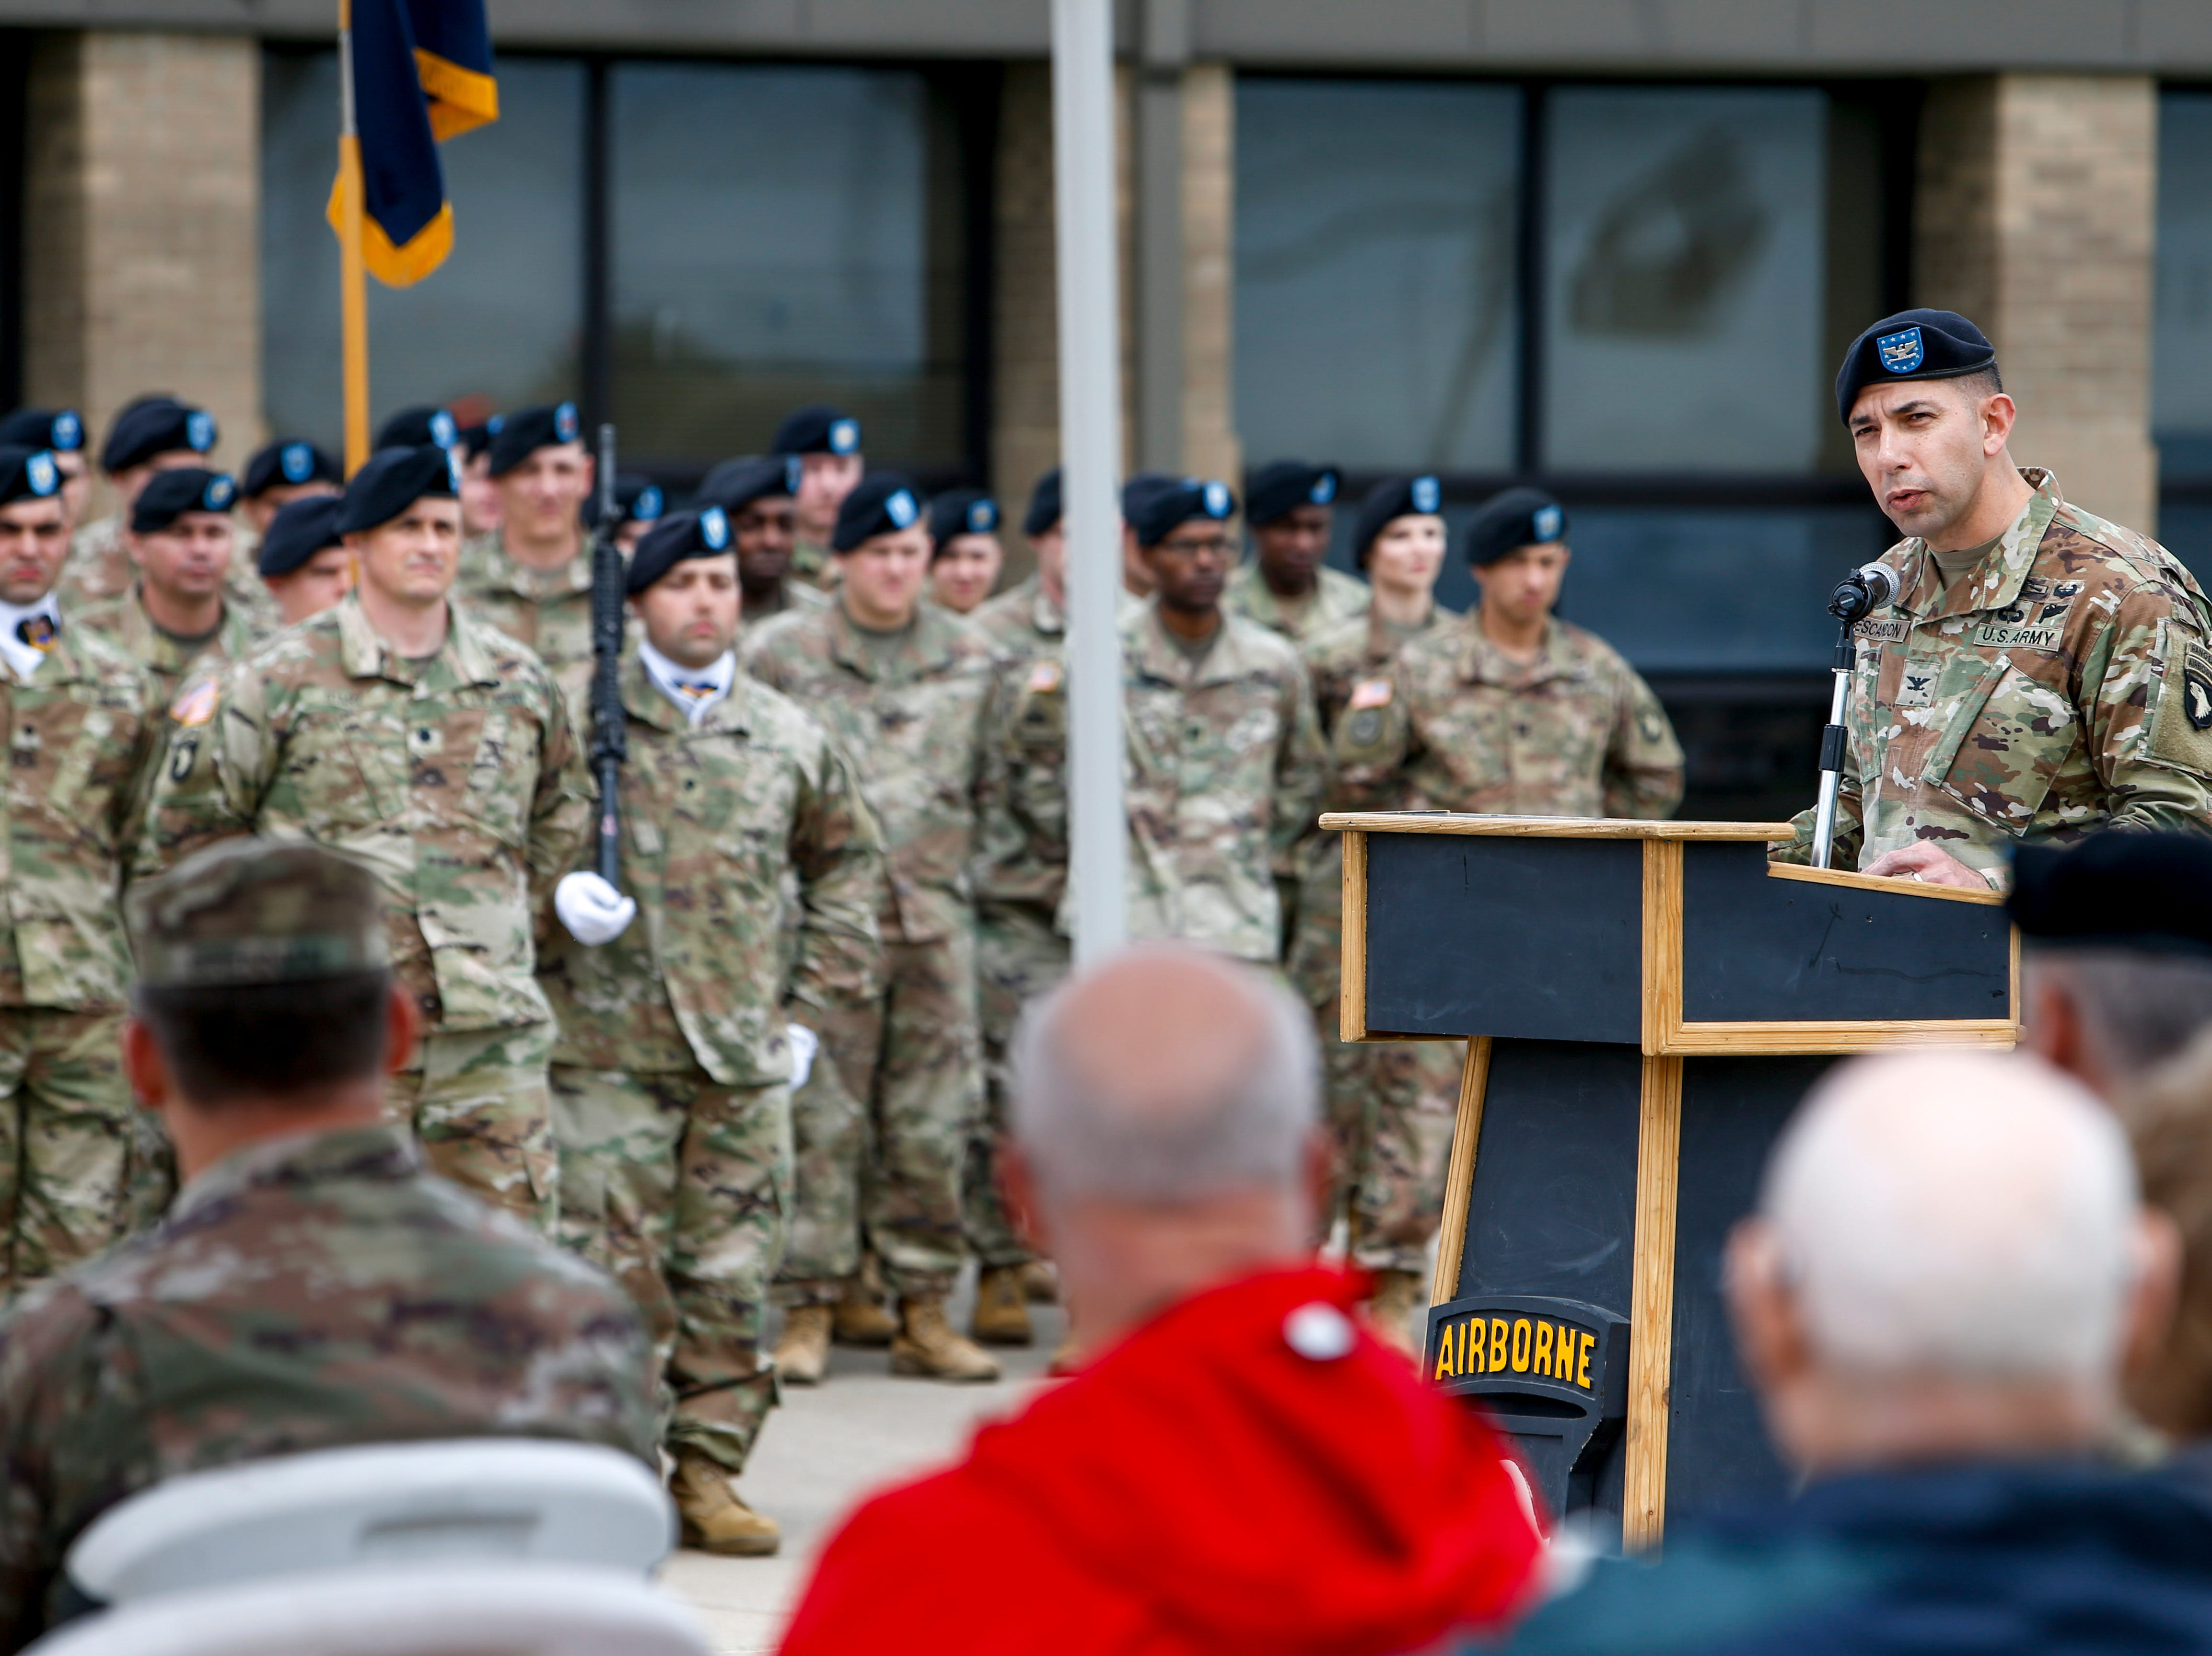 Col. Joseph Escandon speaks at a podium during a colors casing ceremony prior to deployment for Ukraine at 2 BCT Headquarters in Fort Campbell, KY., on Friday, April 12, 2019.